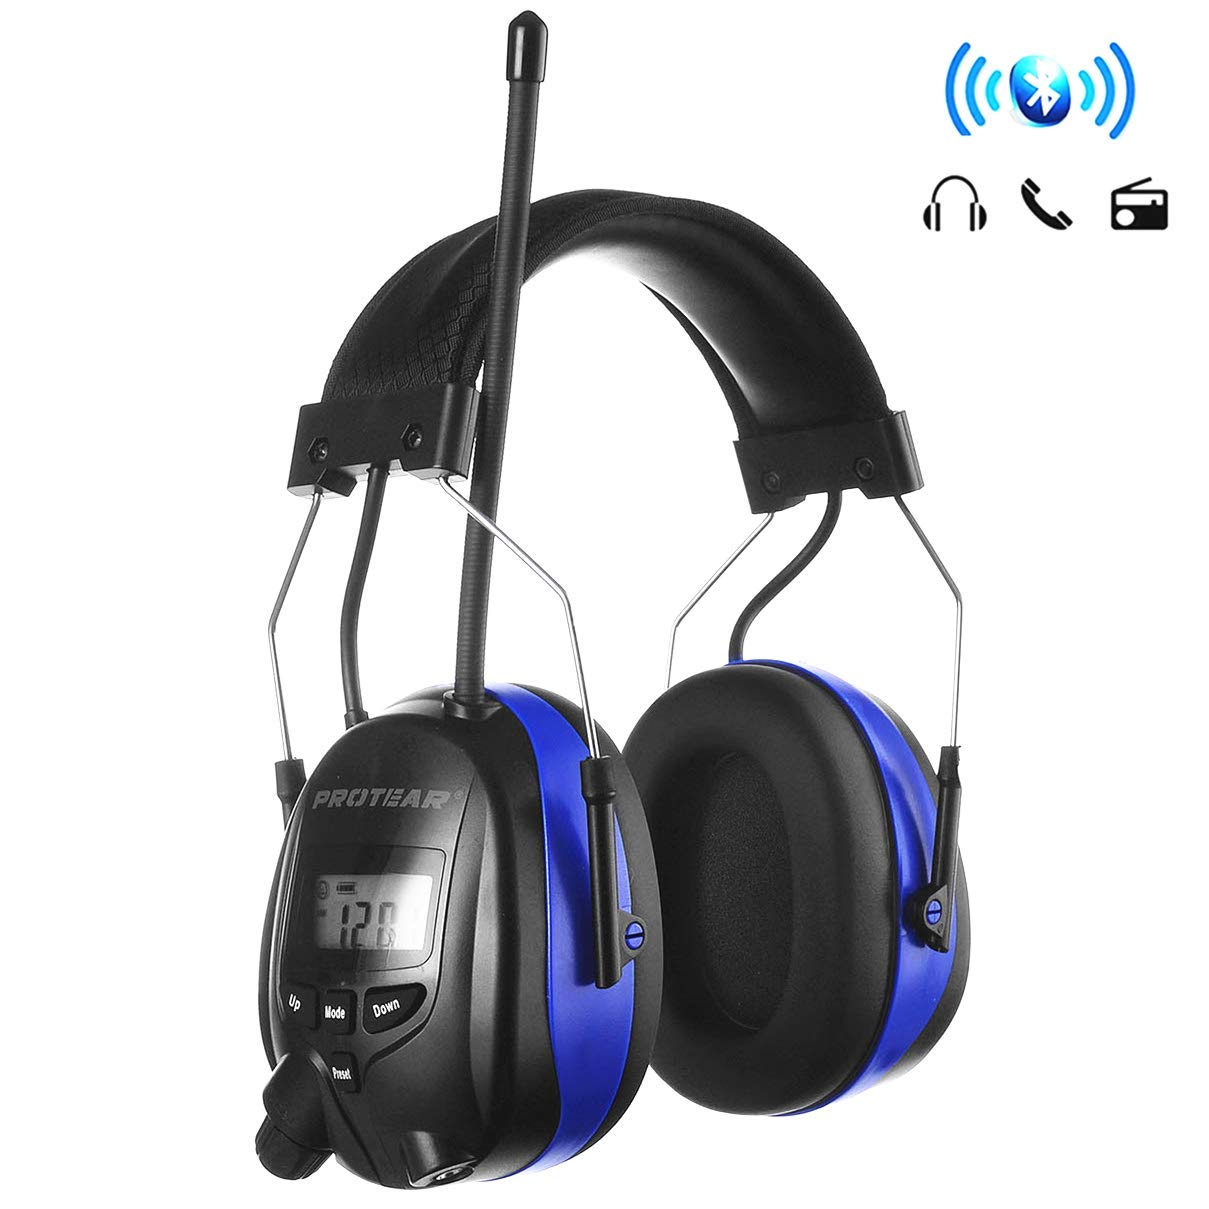 PROTEAR Bluetooth Hearing Protection Radio Headphones, AM/FM Digital Headset, NRR 25dB Electronic Noise Reduction Safety Ear Muffs for Working Mowing Construction(Blue)